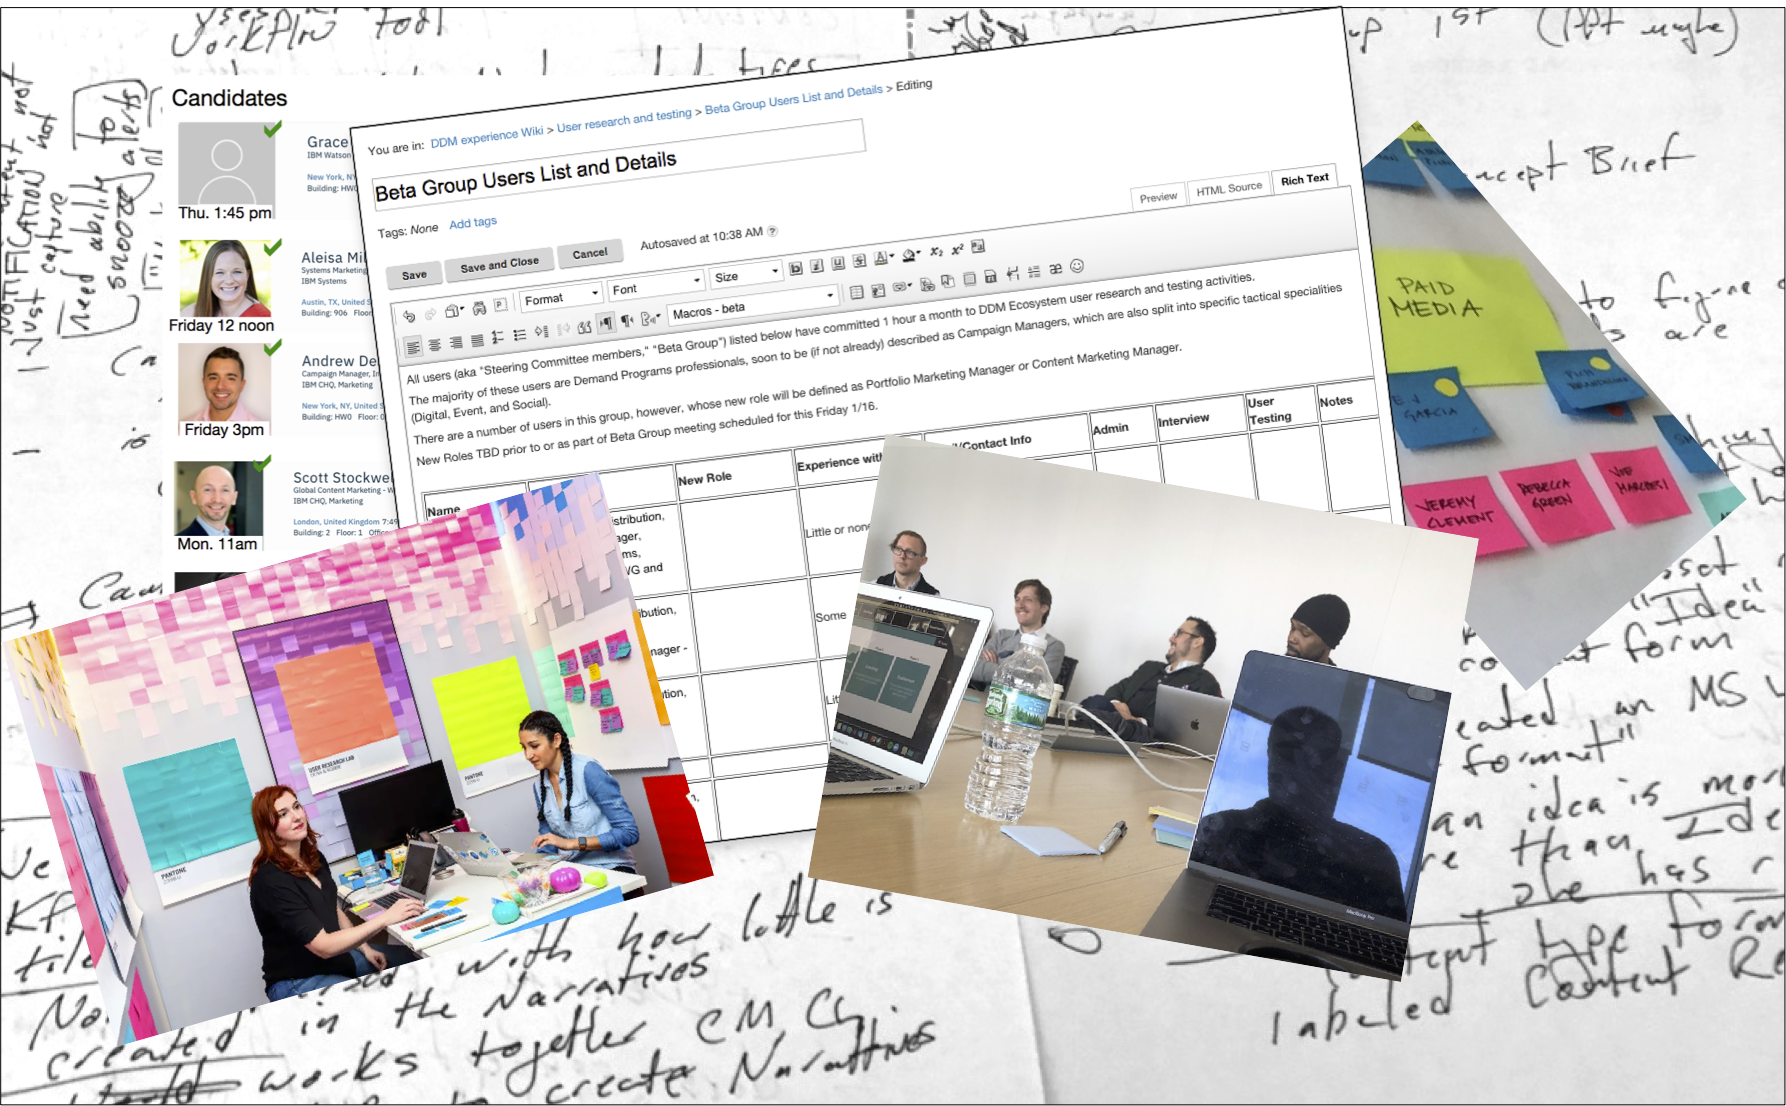 collage of user-testing-related photos, notes, forms, and schedules